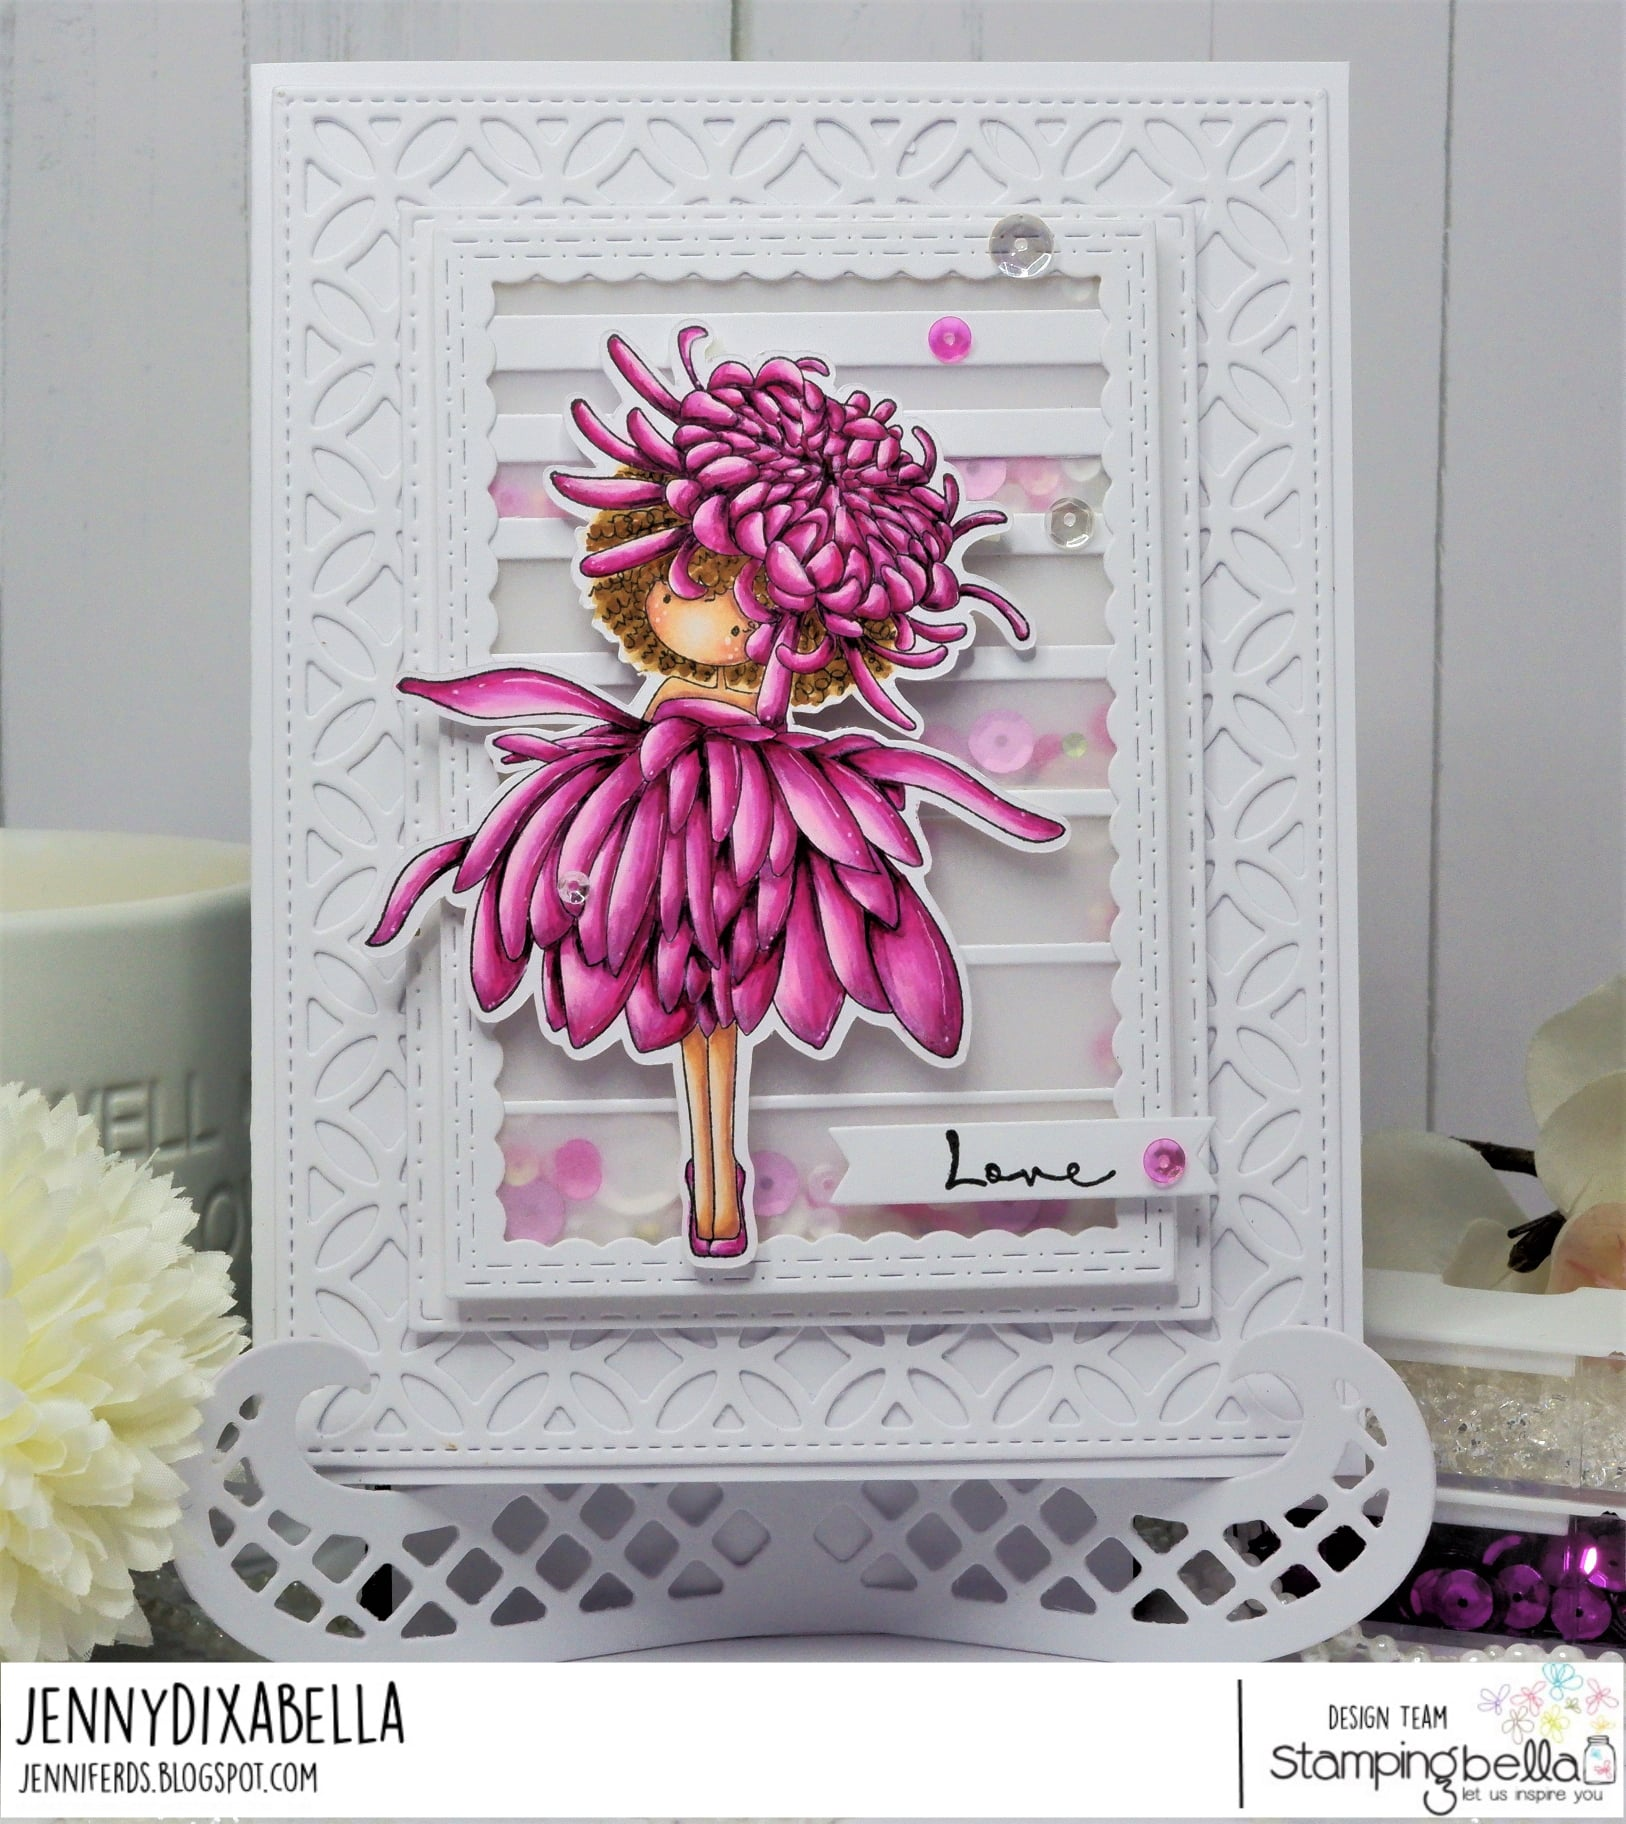 www.stampingbella.com: rubber stamp used: TINY TOWNIE GARDEN GIRL CHRYSANTHEMUM card by Jenny Dix